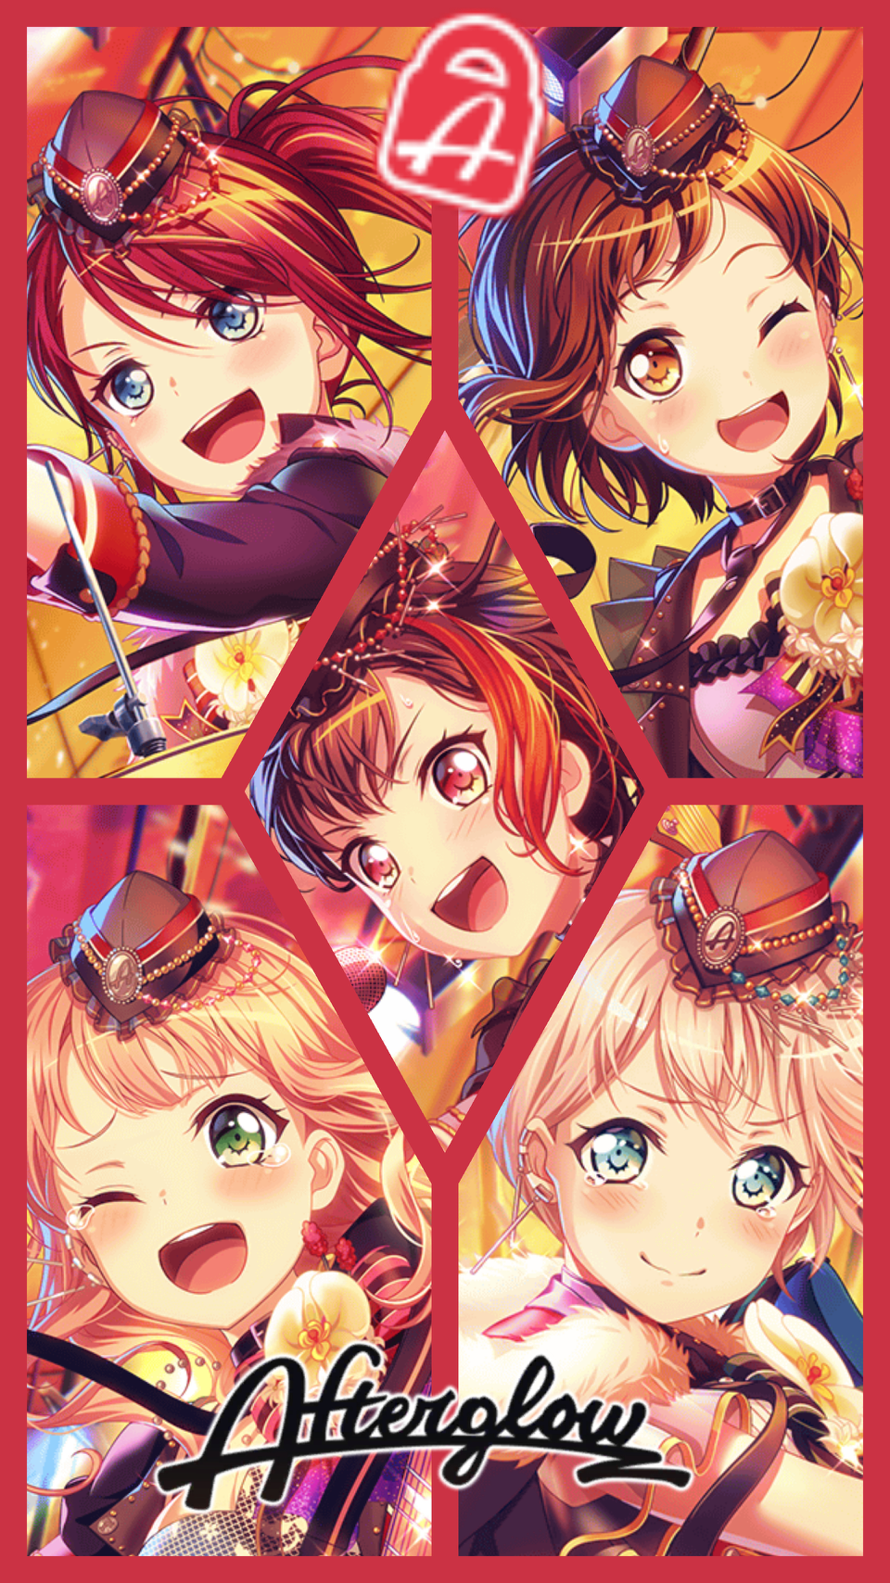 Afterglow is here!